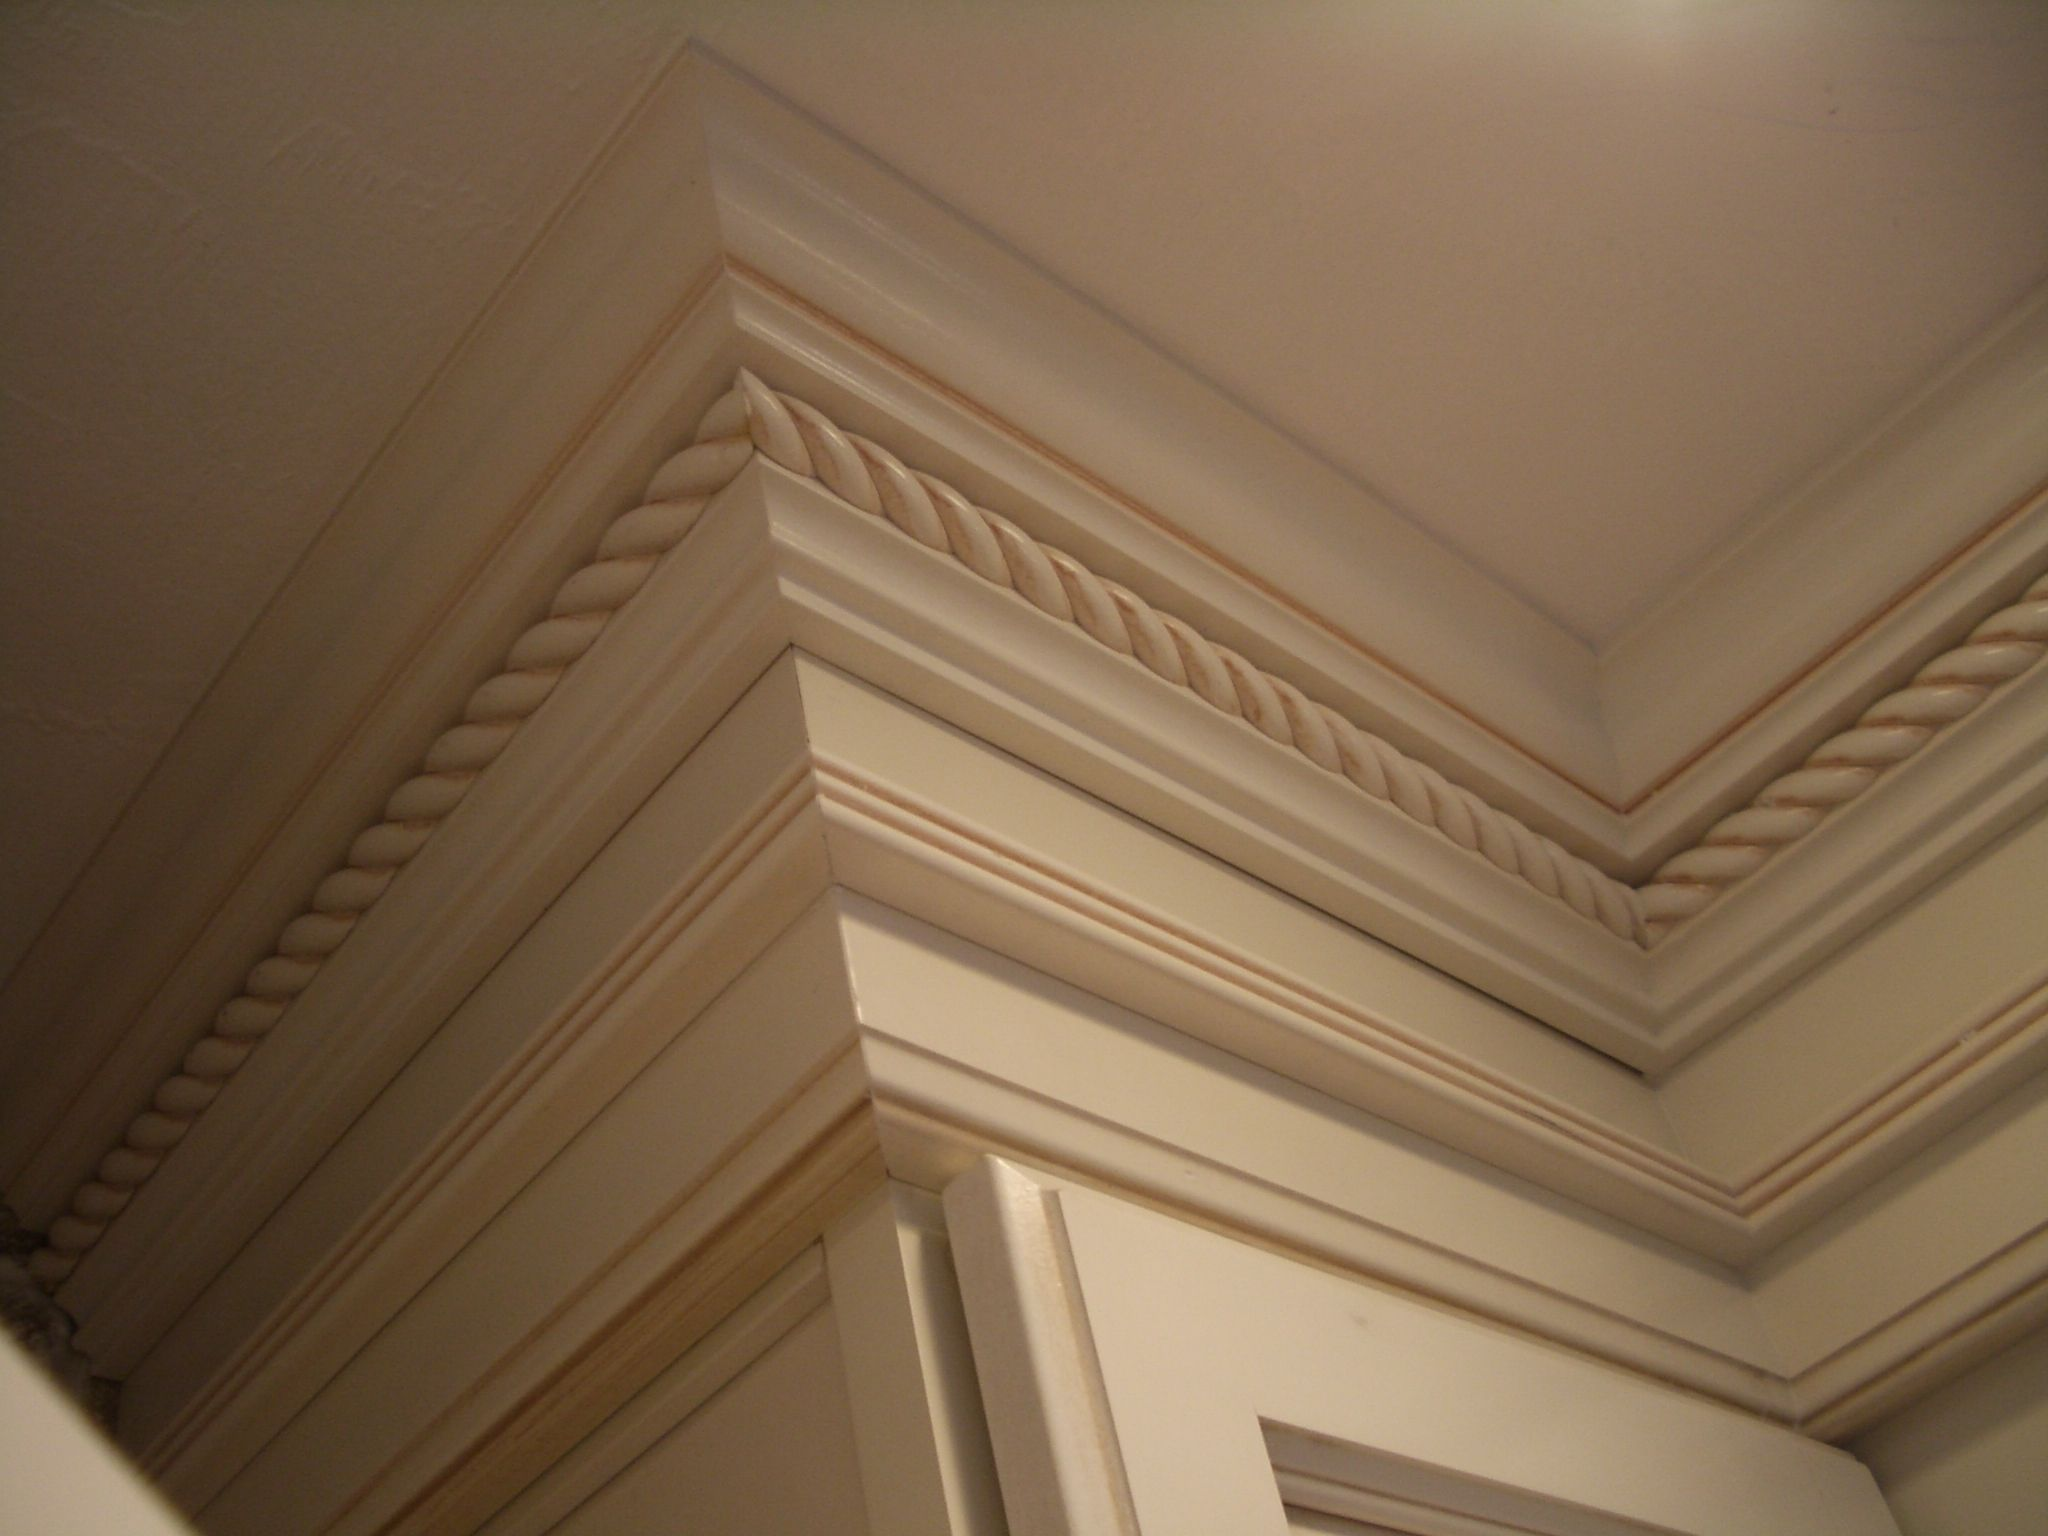 painted cabinets, crown, rope molding, moulding, kitchen trim